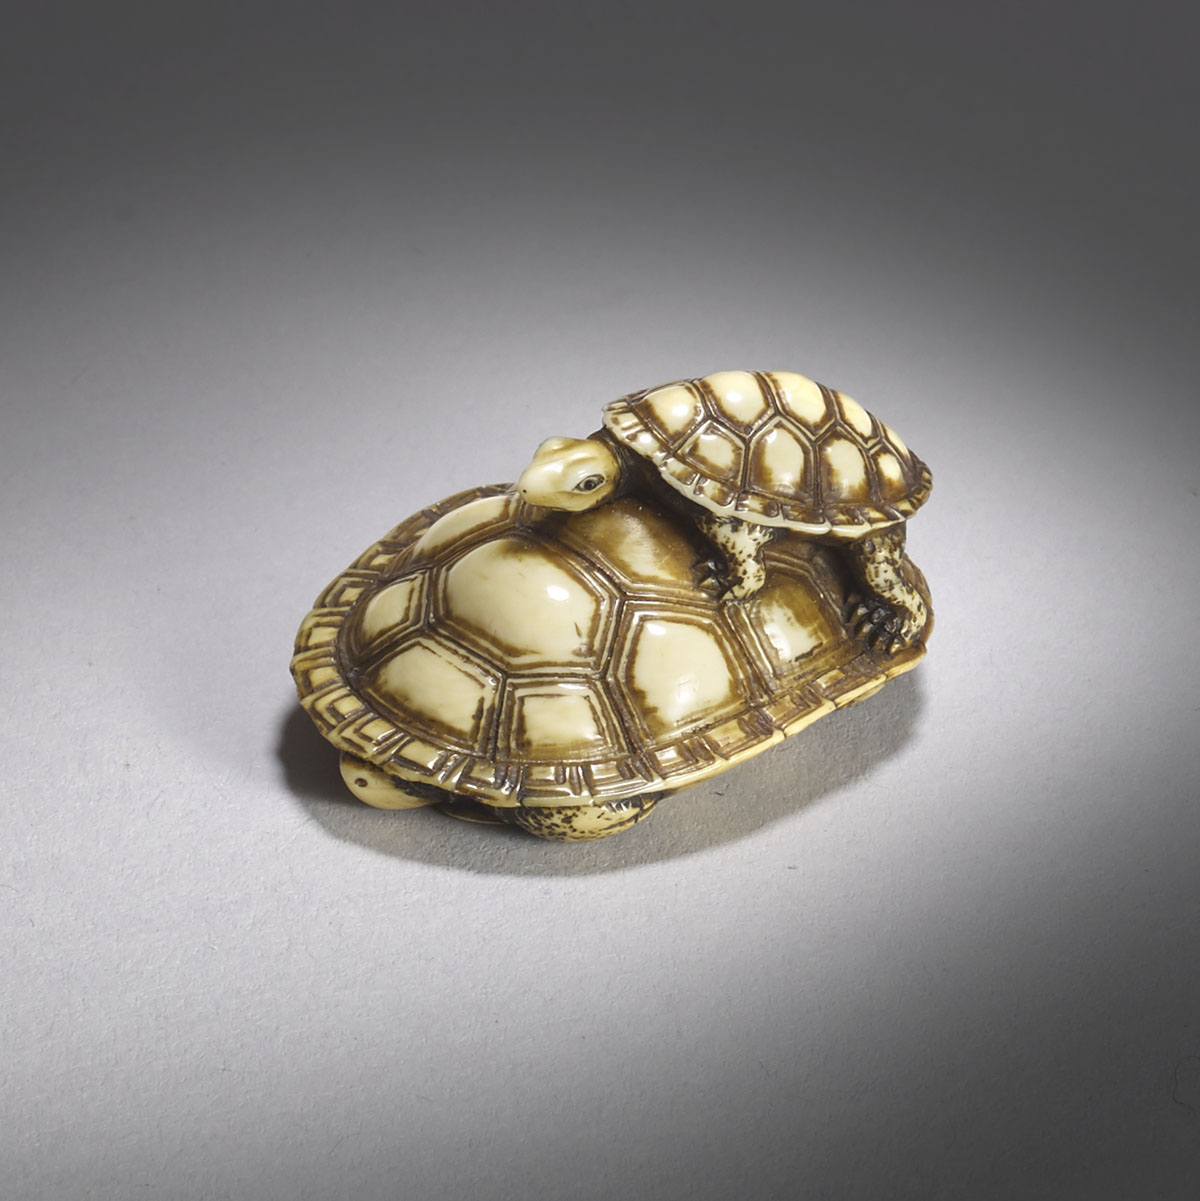 Doraku, ivory netsuke of turtles